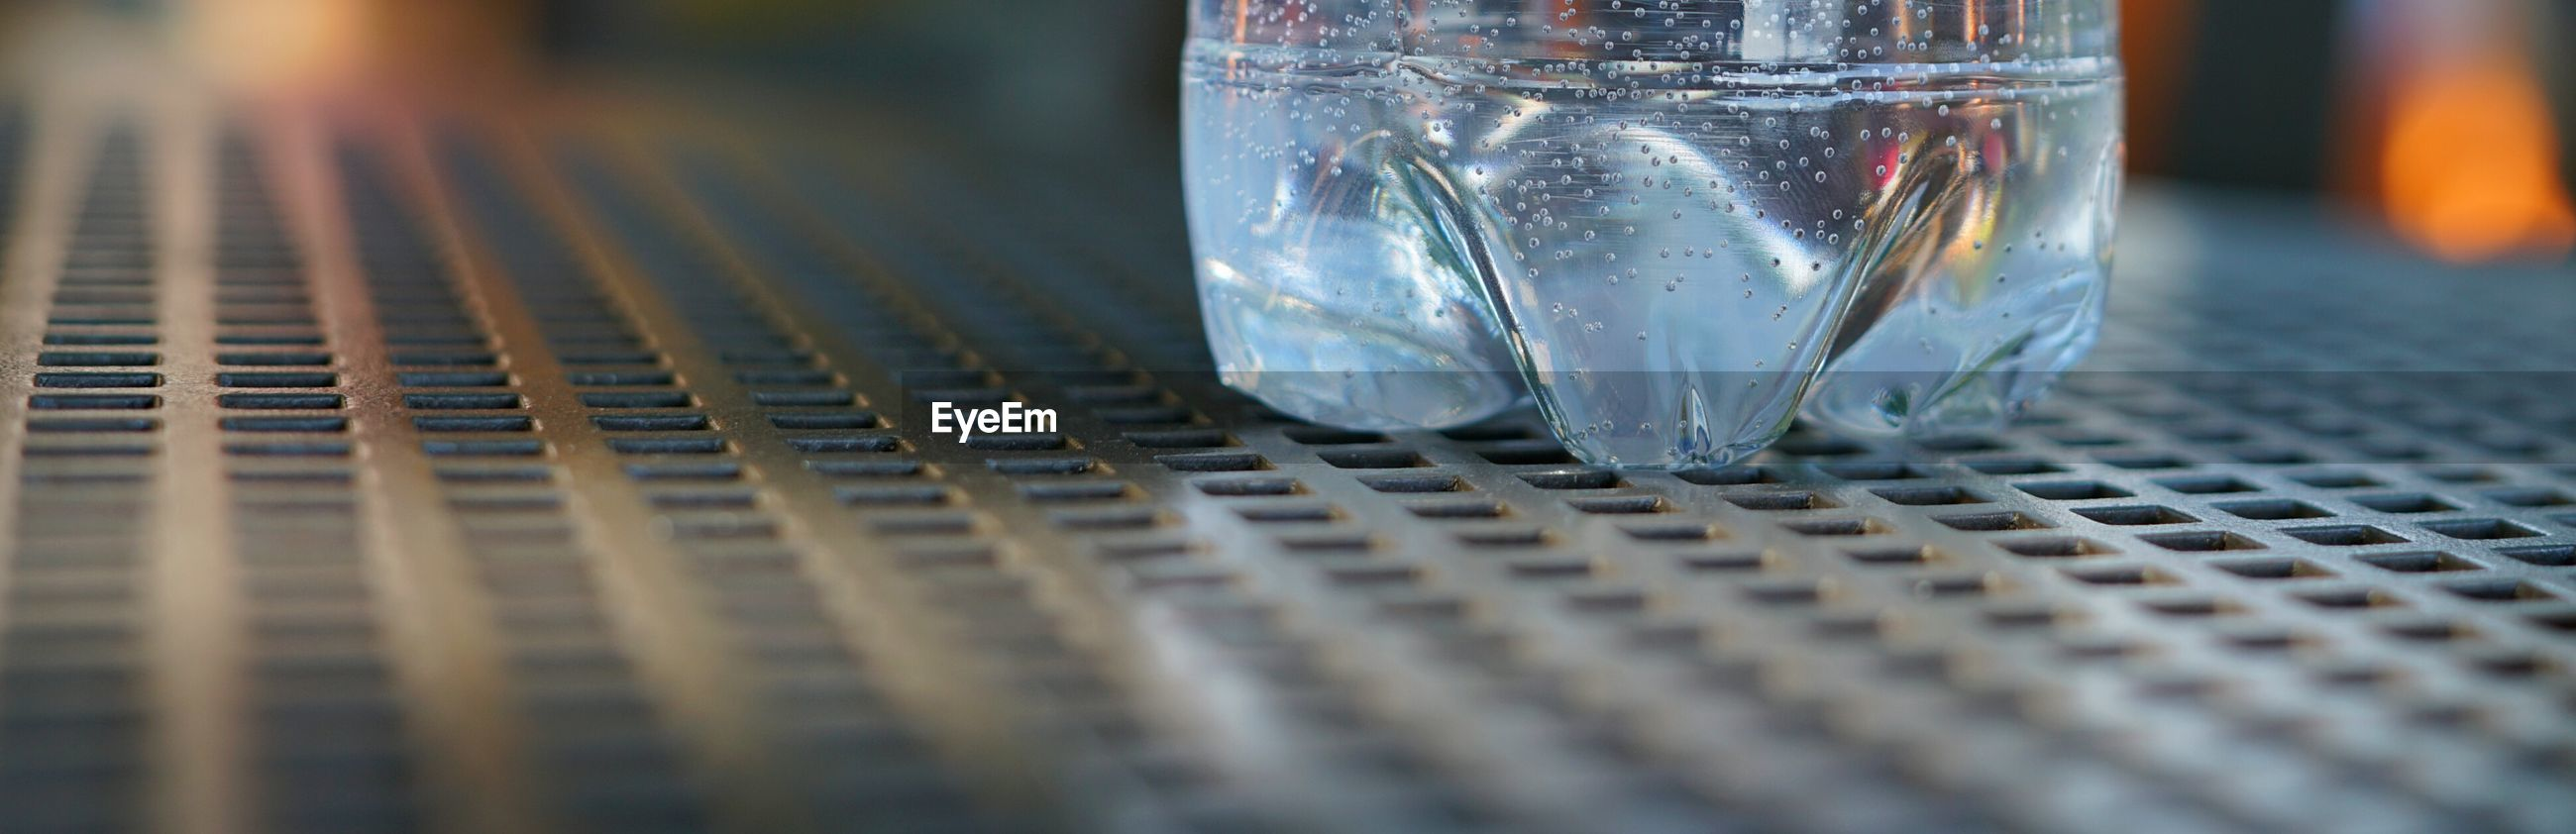 Panoramic view of water bottle on metallic table